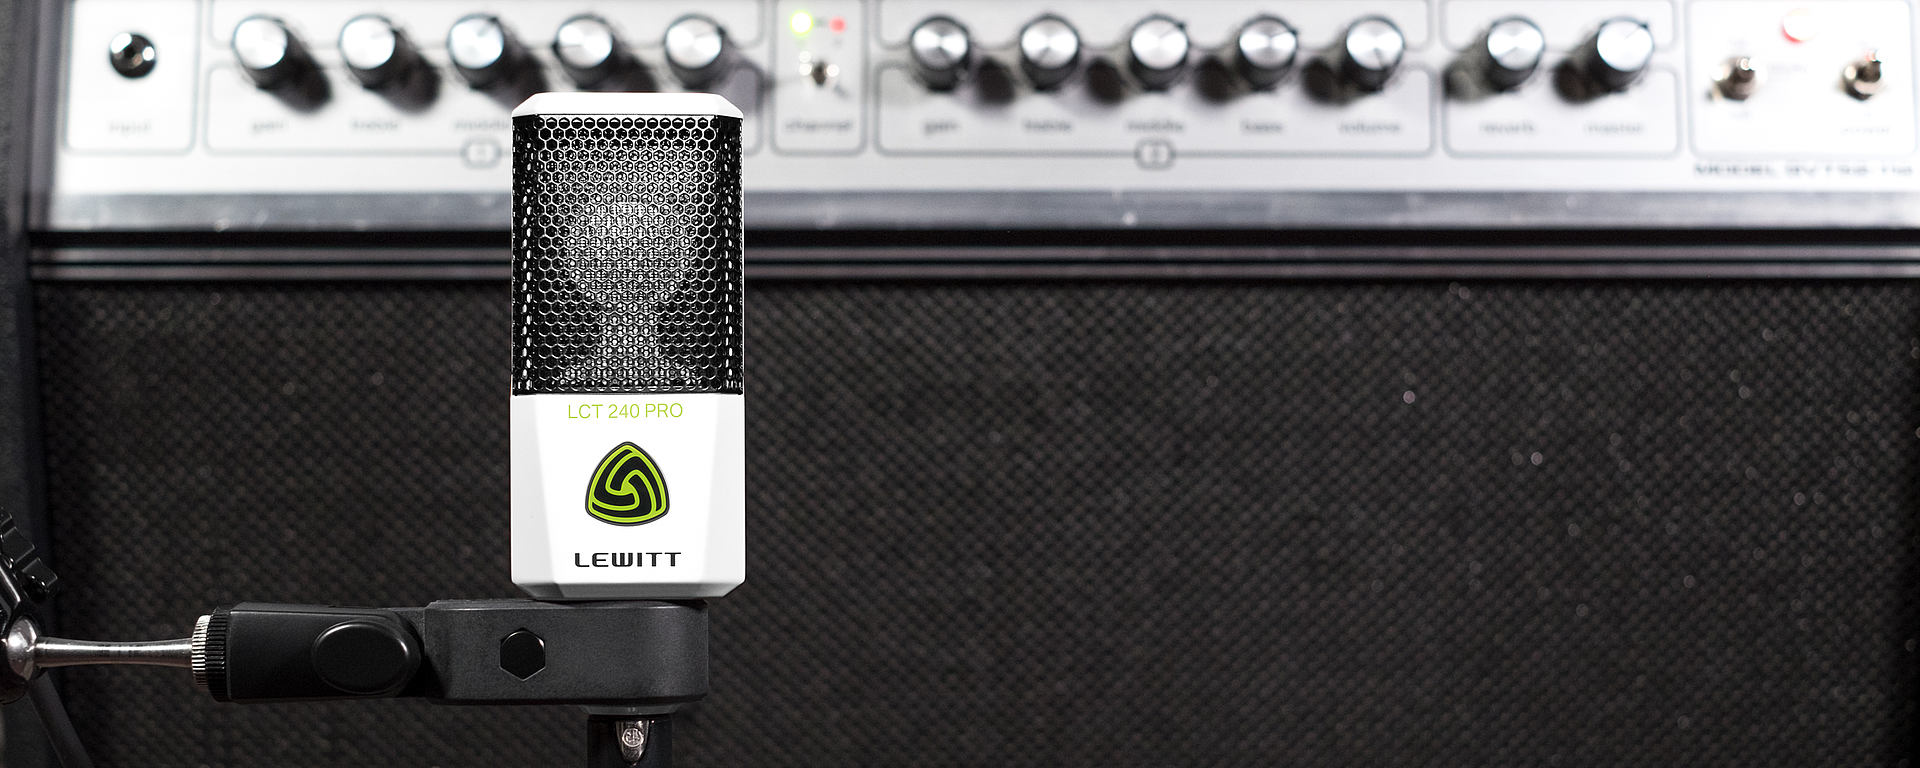 LCT 240 PRO being used to record a guitar amplifier